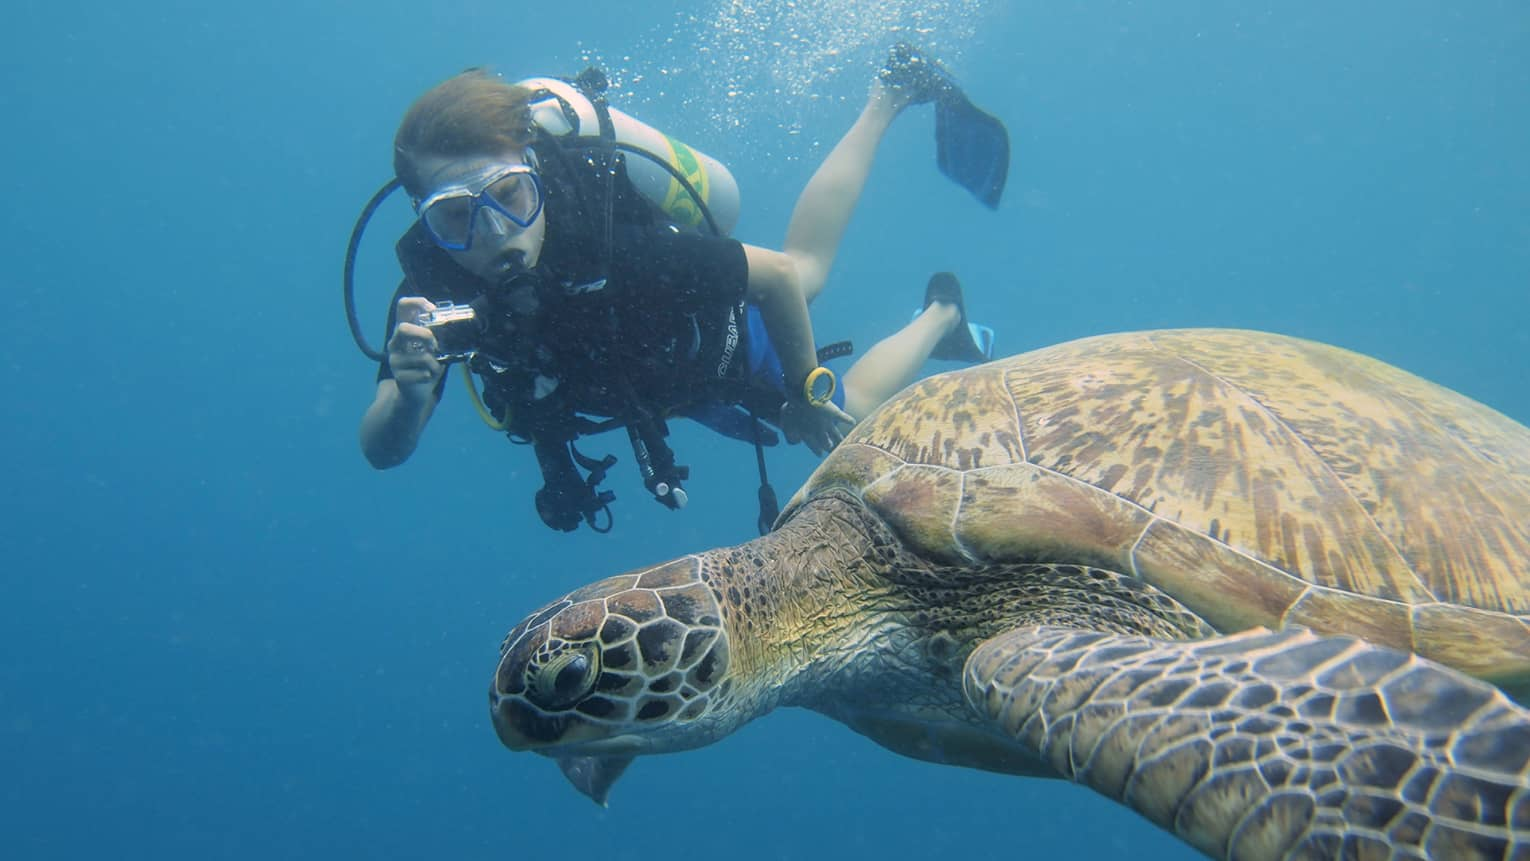 Scuba diver with underwater camera takes photo of large turtle